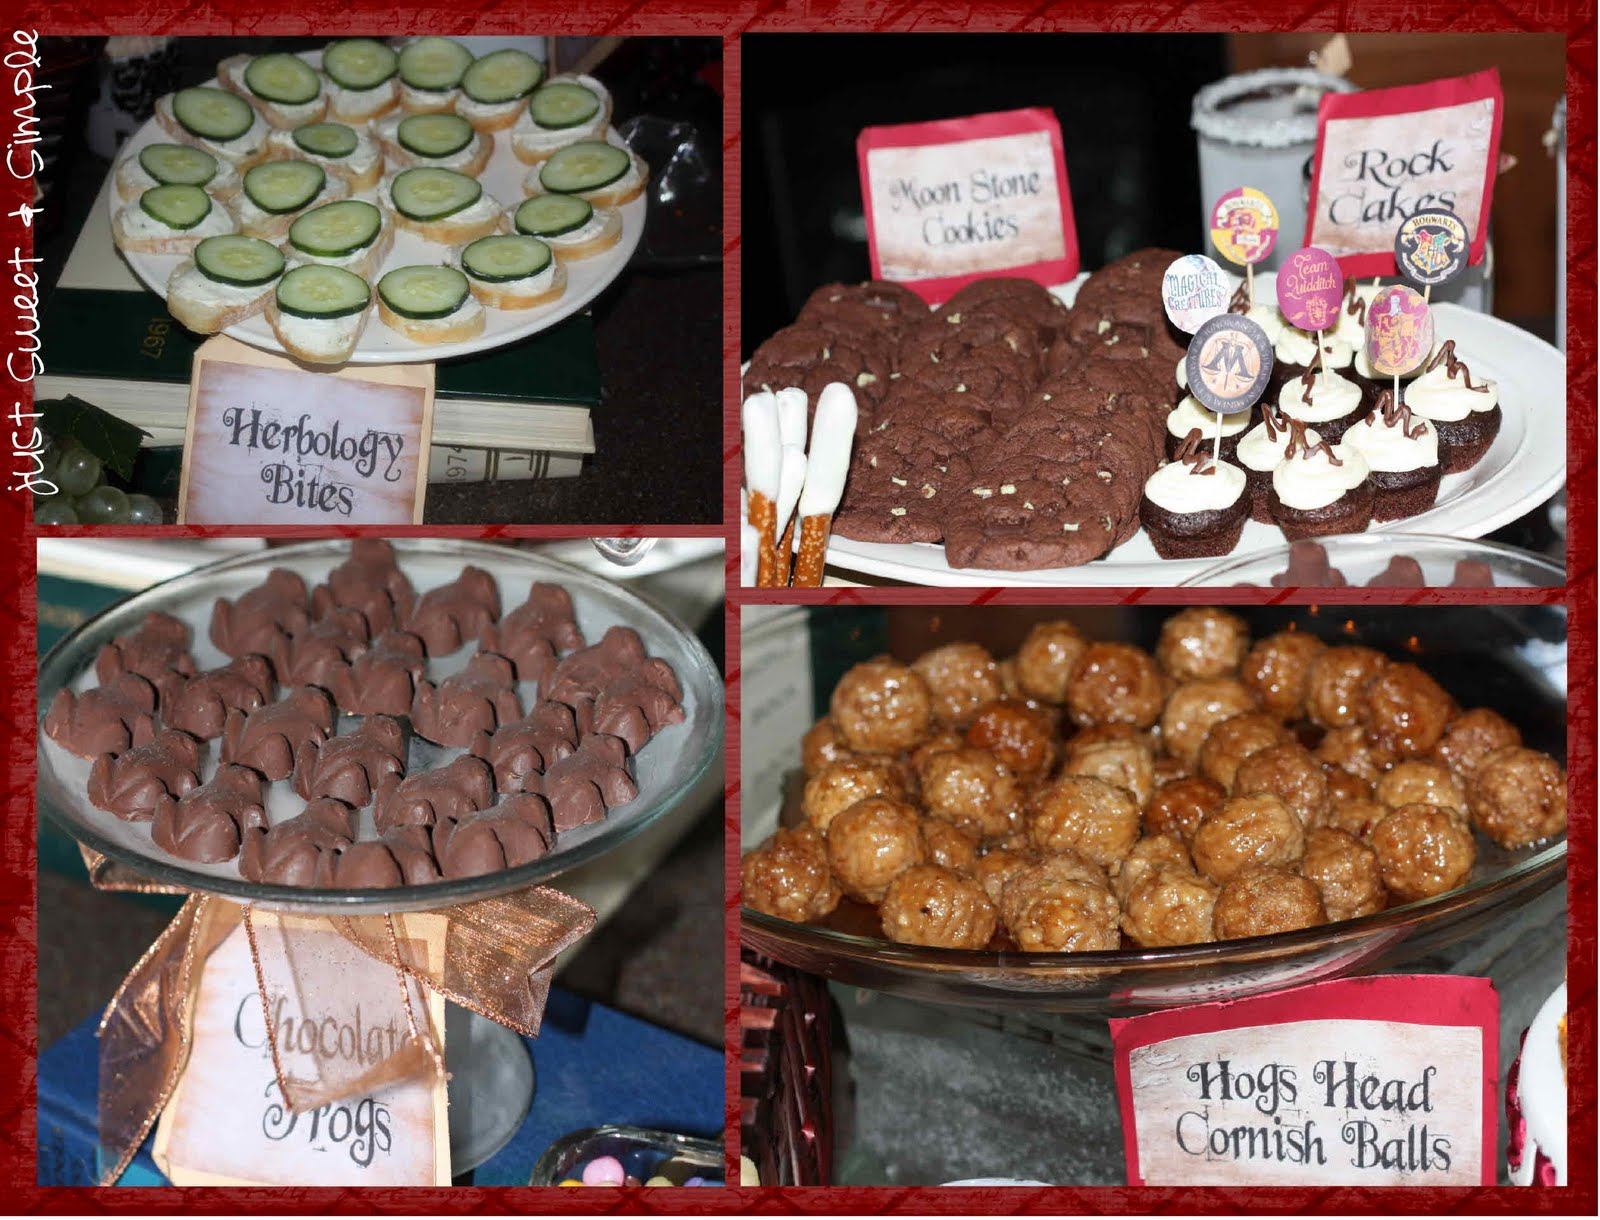 Just sweet and simple harry potter party herbology bites moon stone cookies rock cakes chocolate frogs hogs head cornish balls forumfinder Images